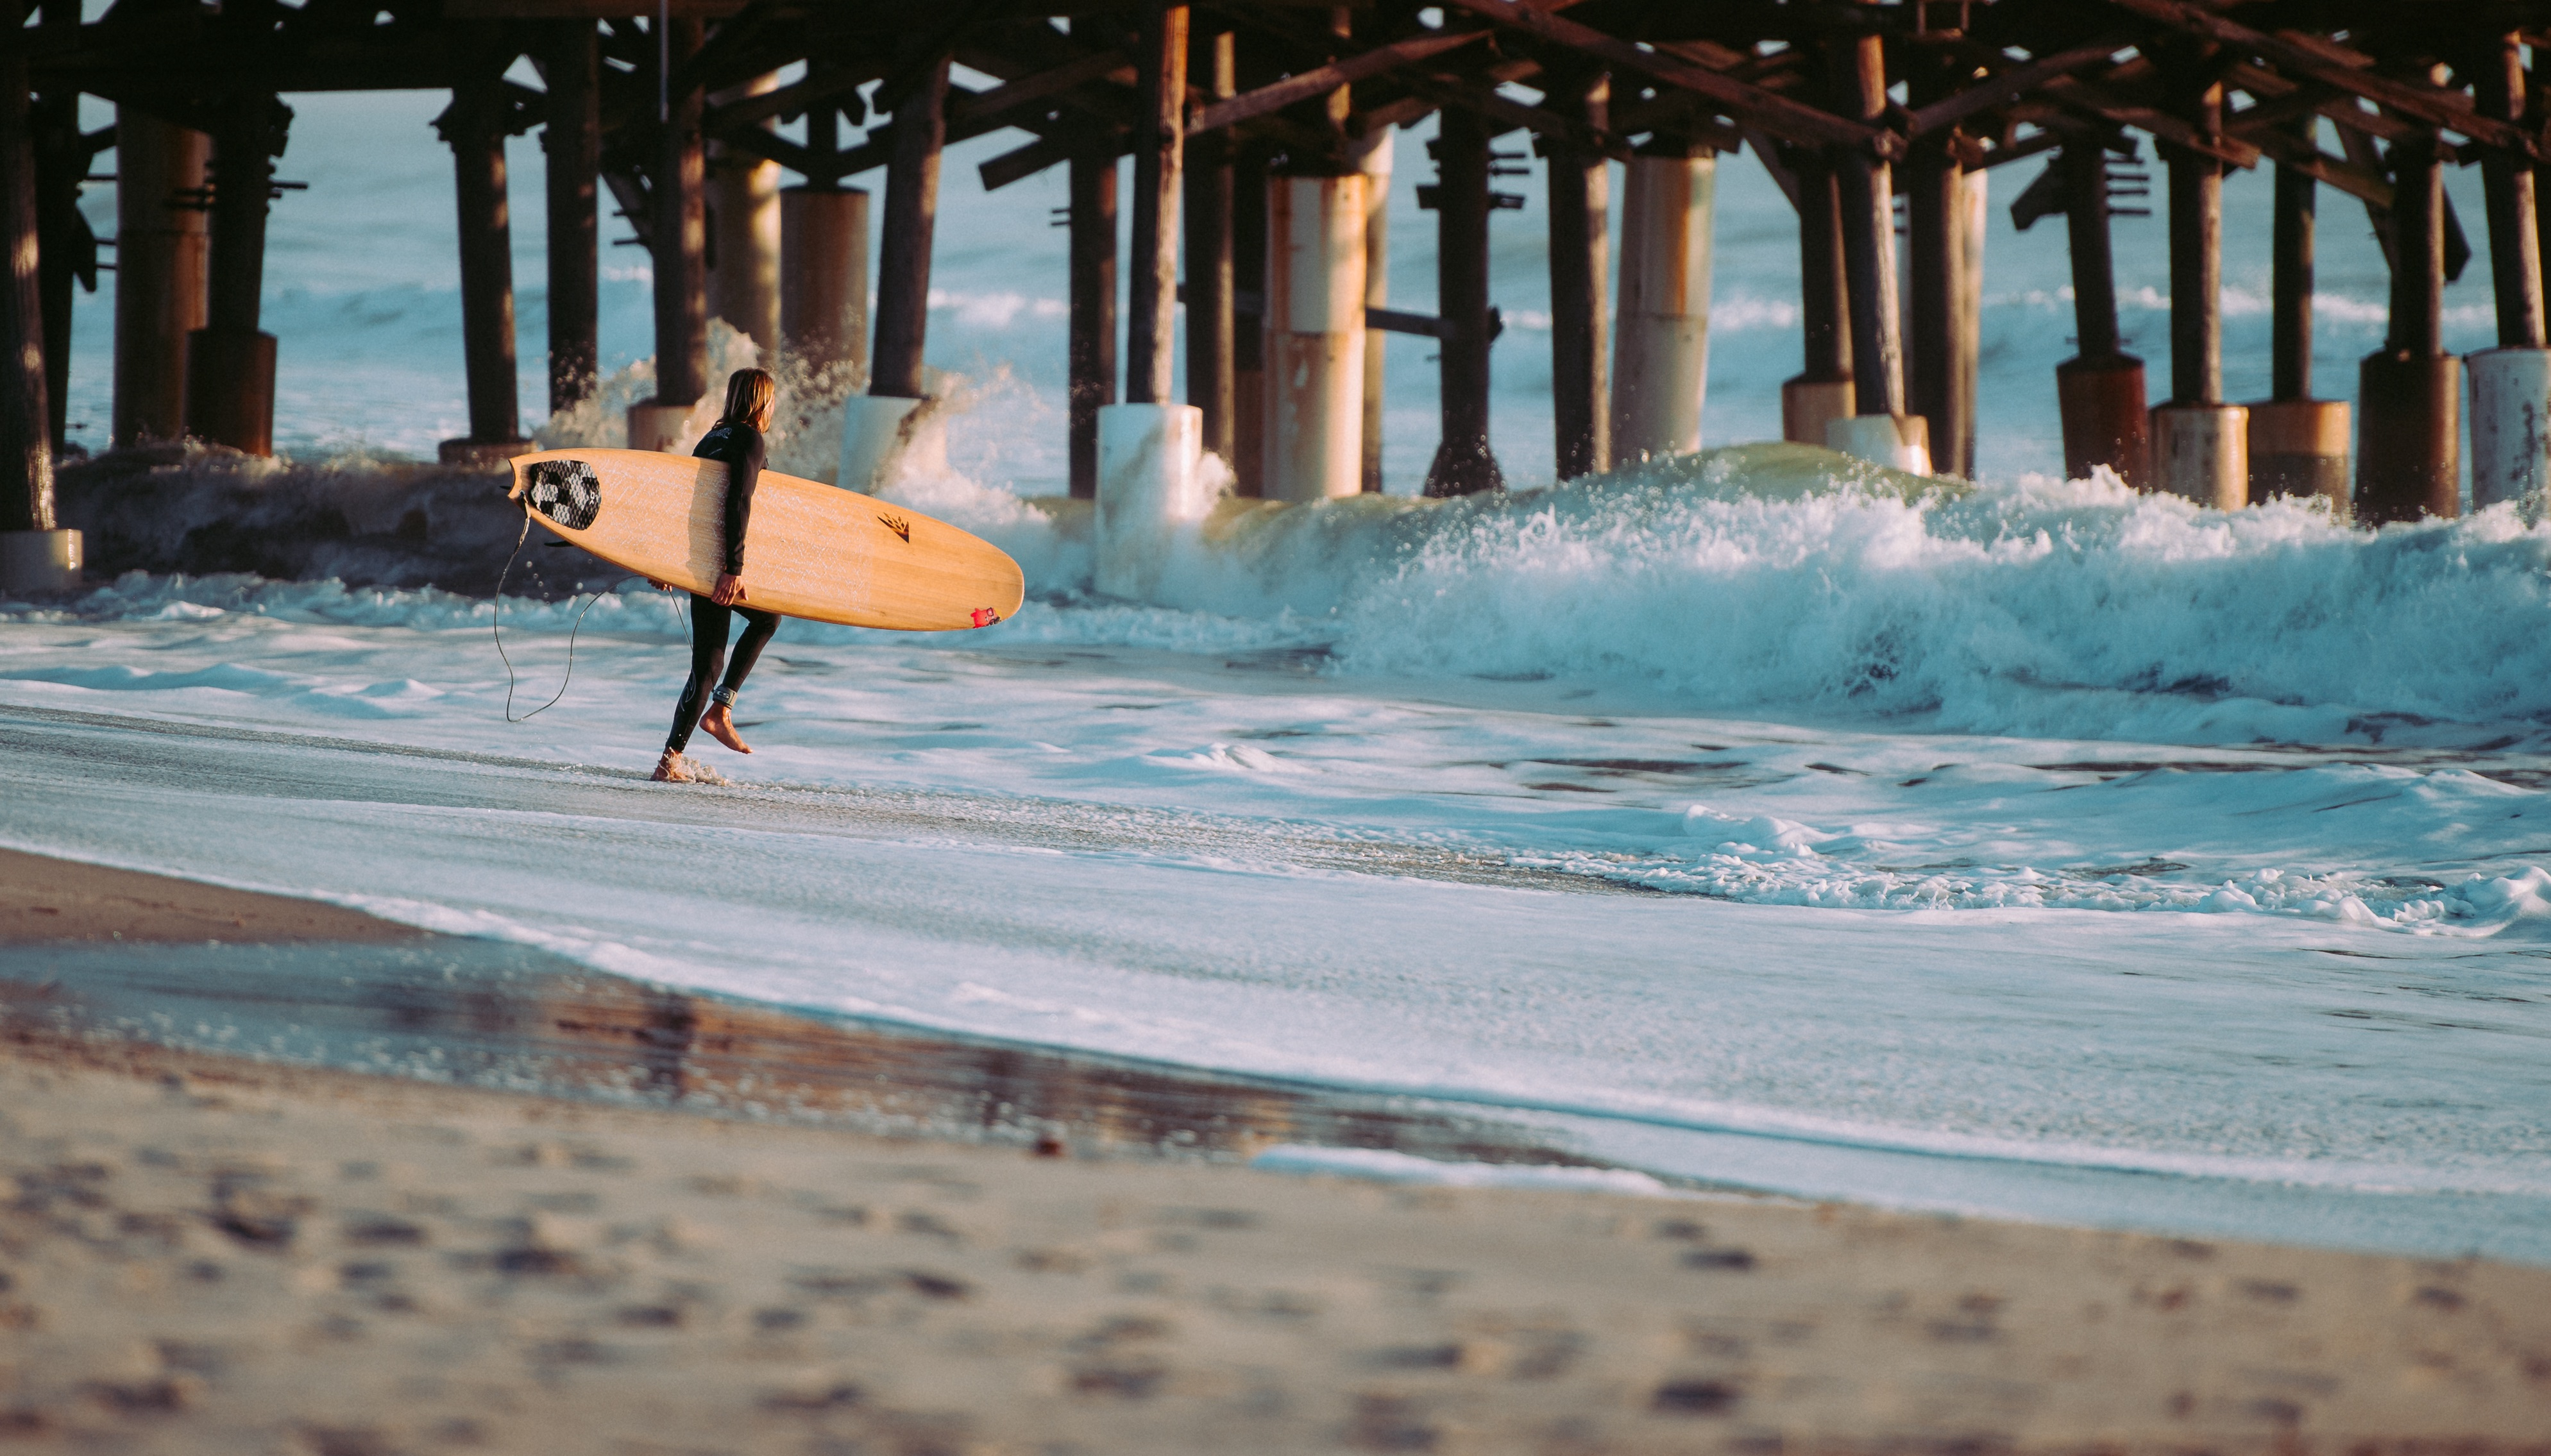 131639 download wallpaper Sports, Serfing, Surfer, Sea, Waves screensavers and pictures for free